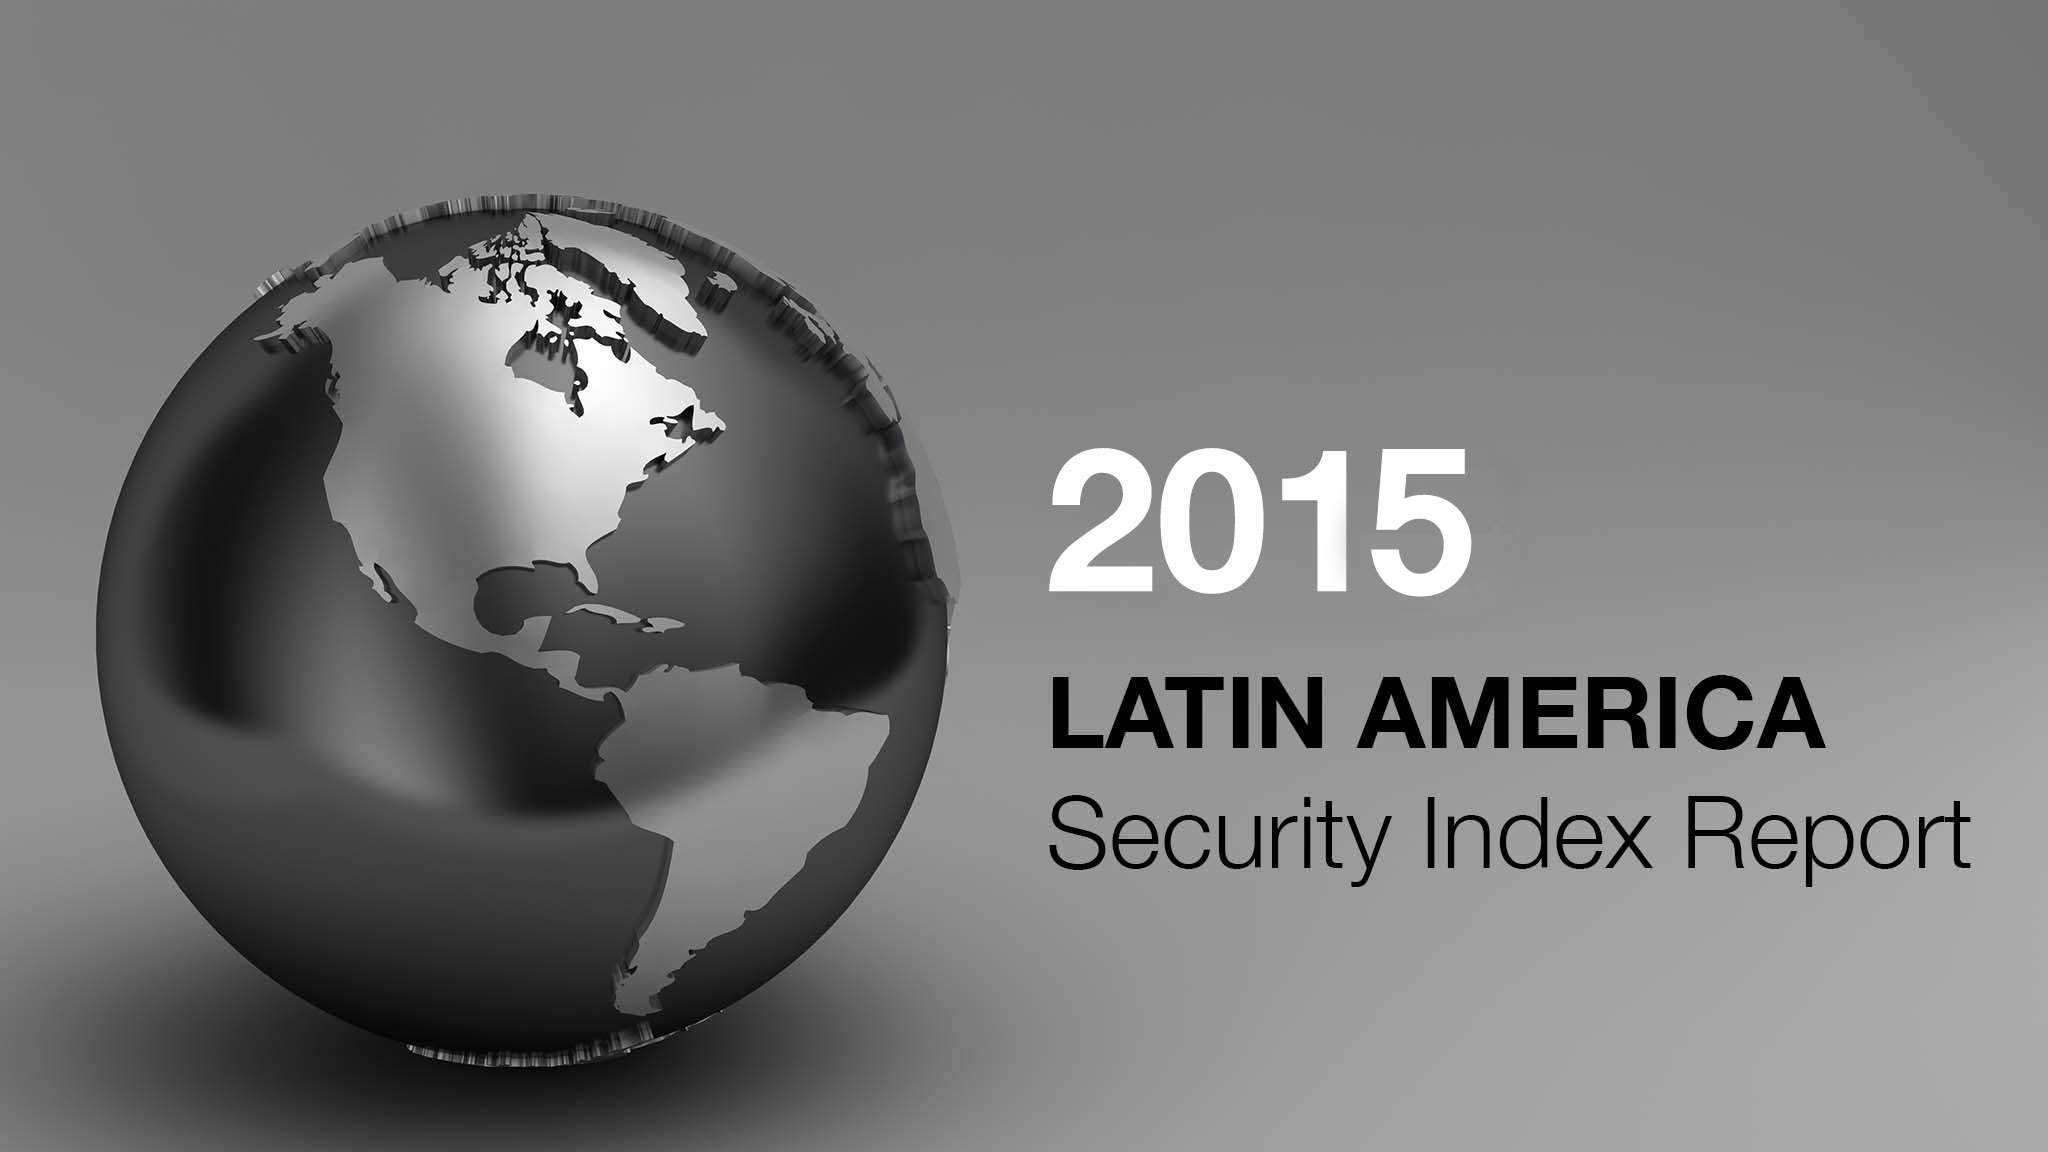 Frank Holder 2015 Latin America Security Index Report